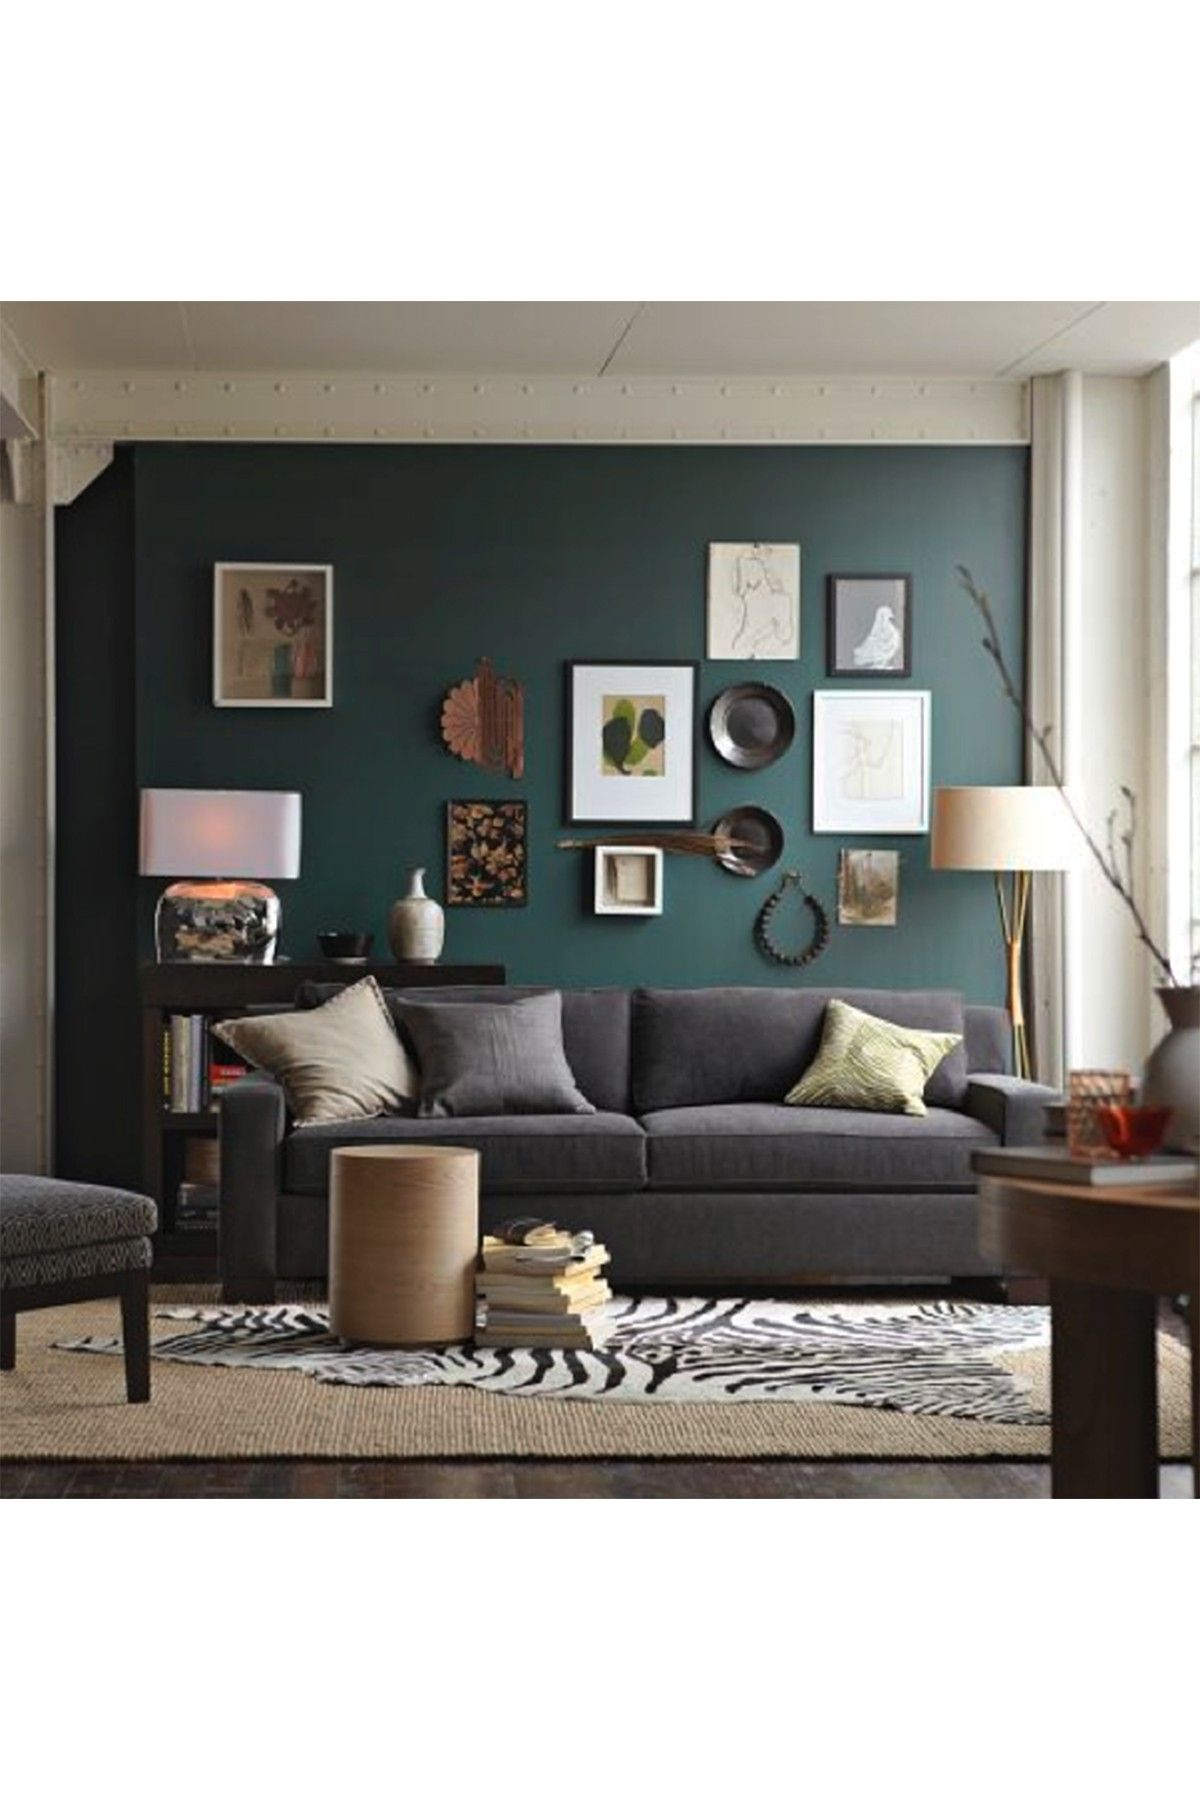 mur vert de gris avec belle vari t d 39 objets et de tableaux r ussi galeries murales. Black Bedroom Furniture Sets. Home Design Ideas